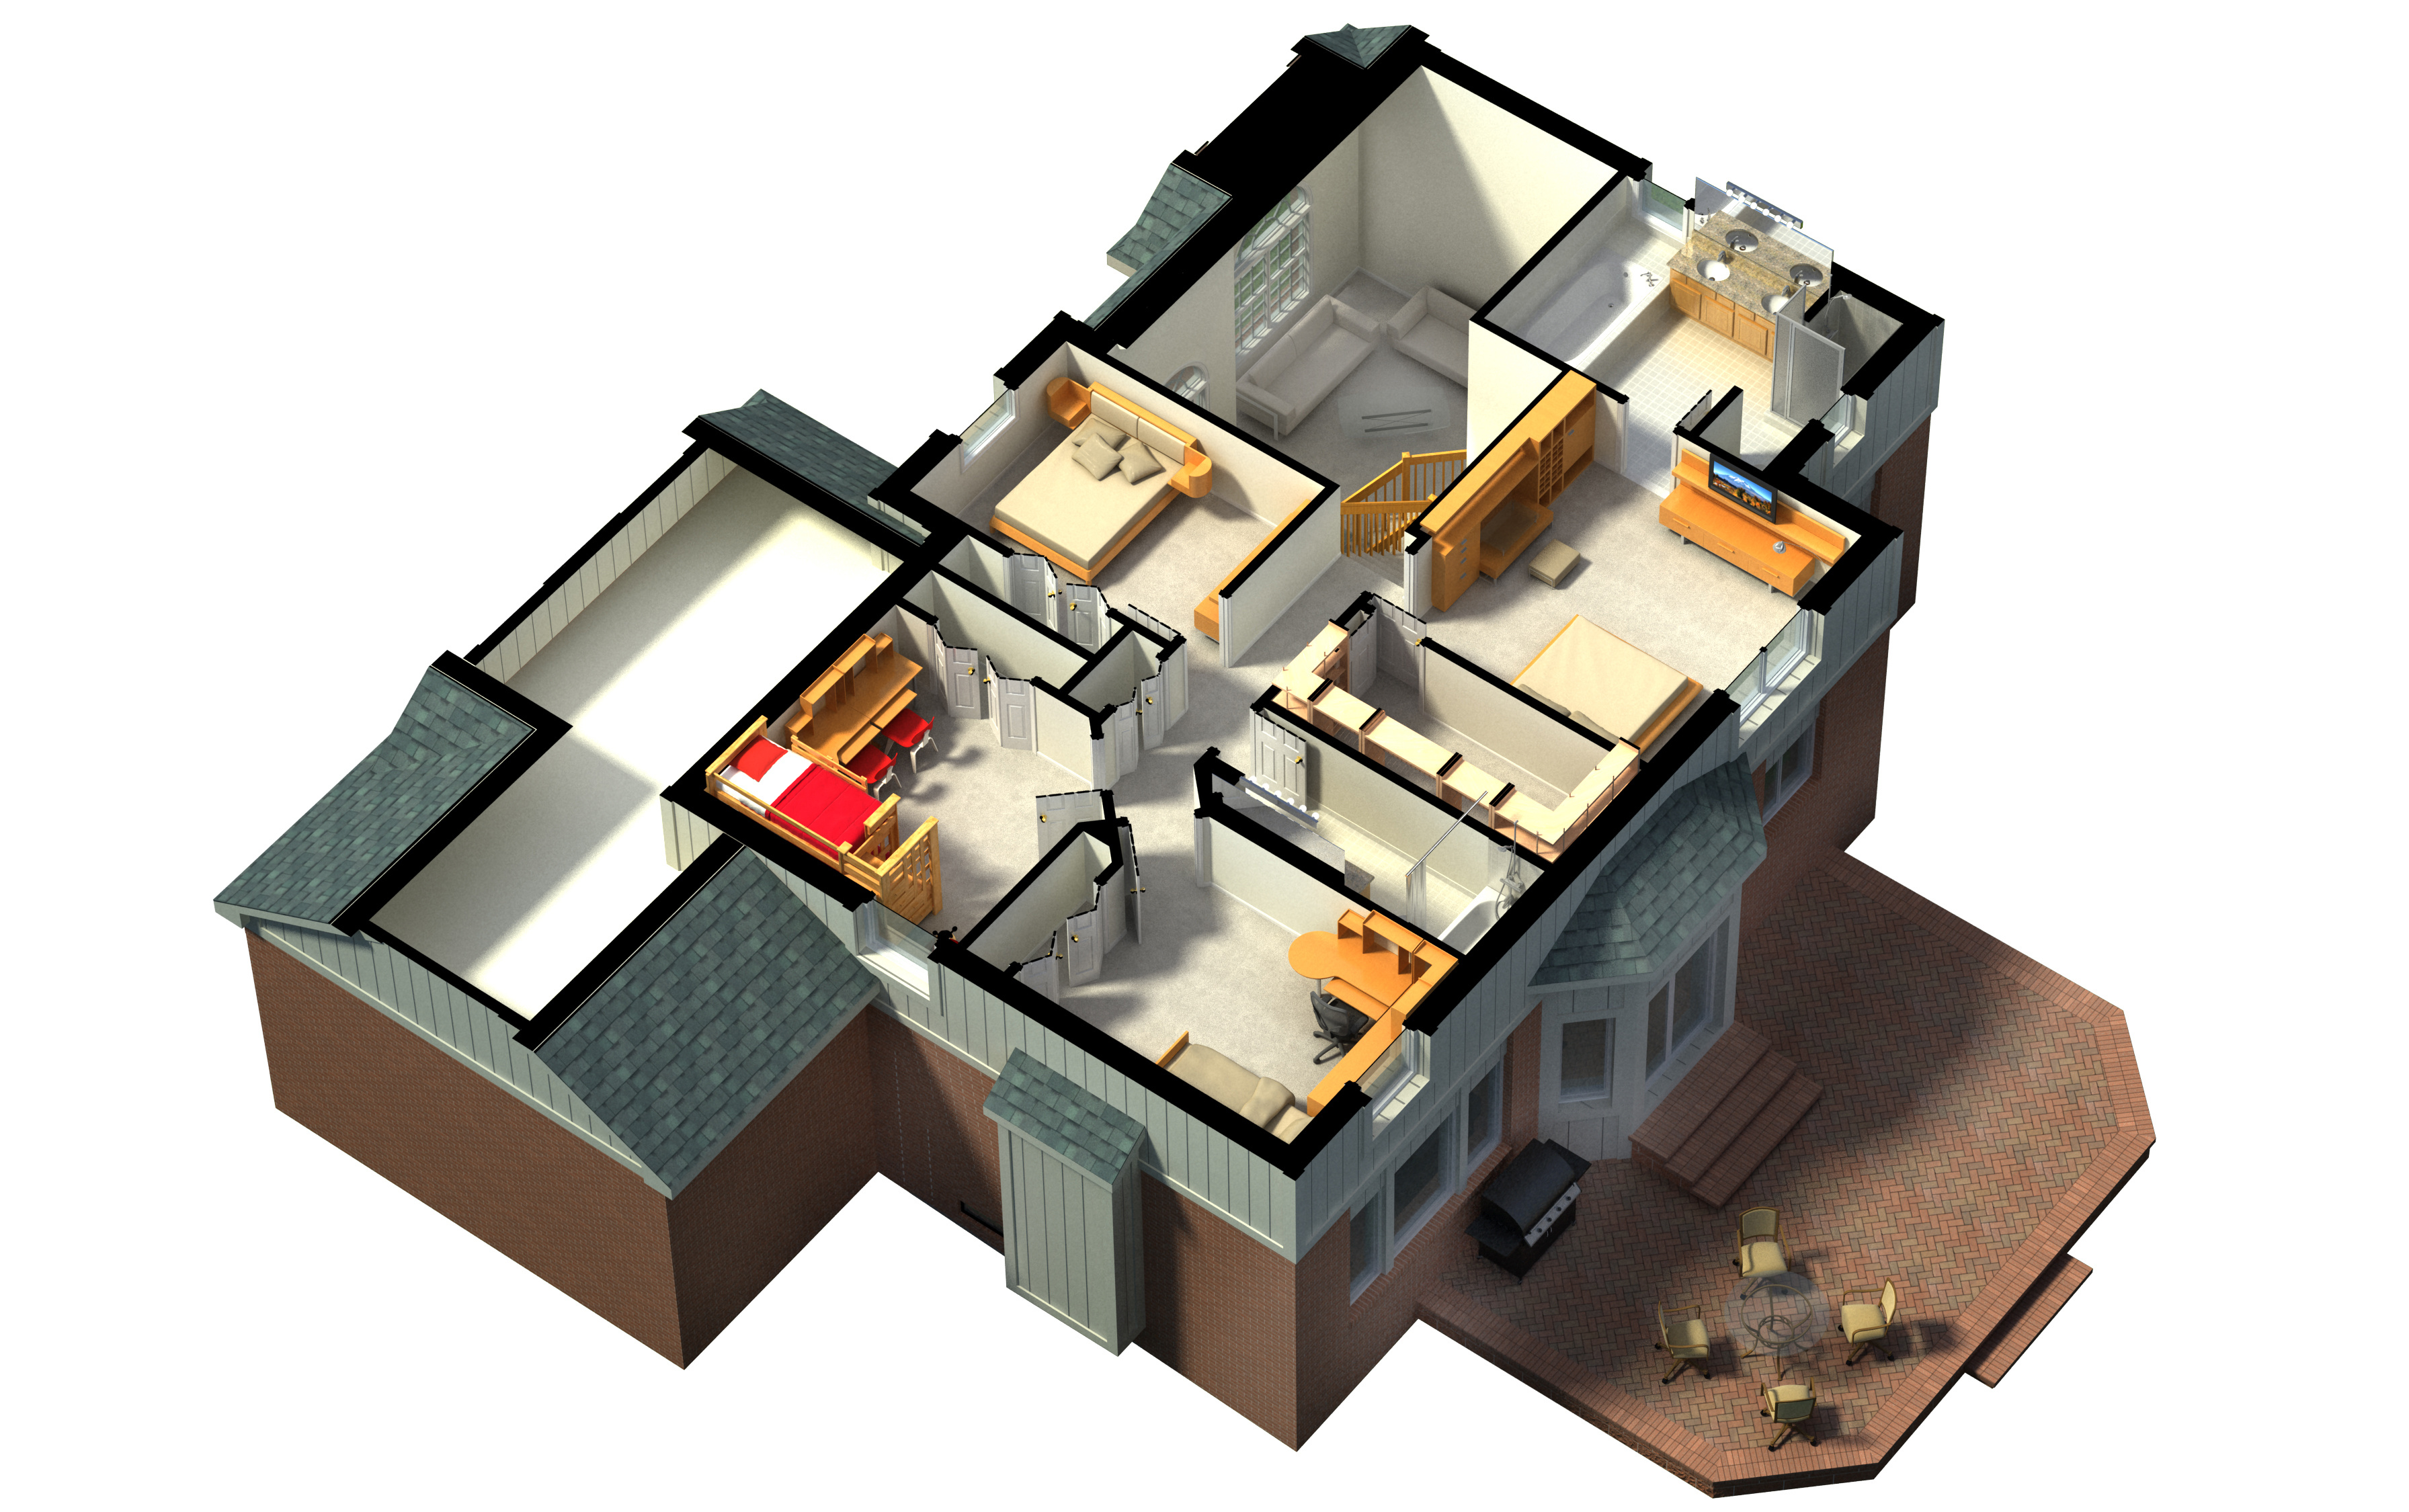 3D rendering of a furnished residential house, with the second floor, showing the staircase, bedrooms, bathrooms and walk-in closets and storage.